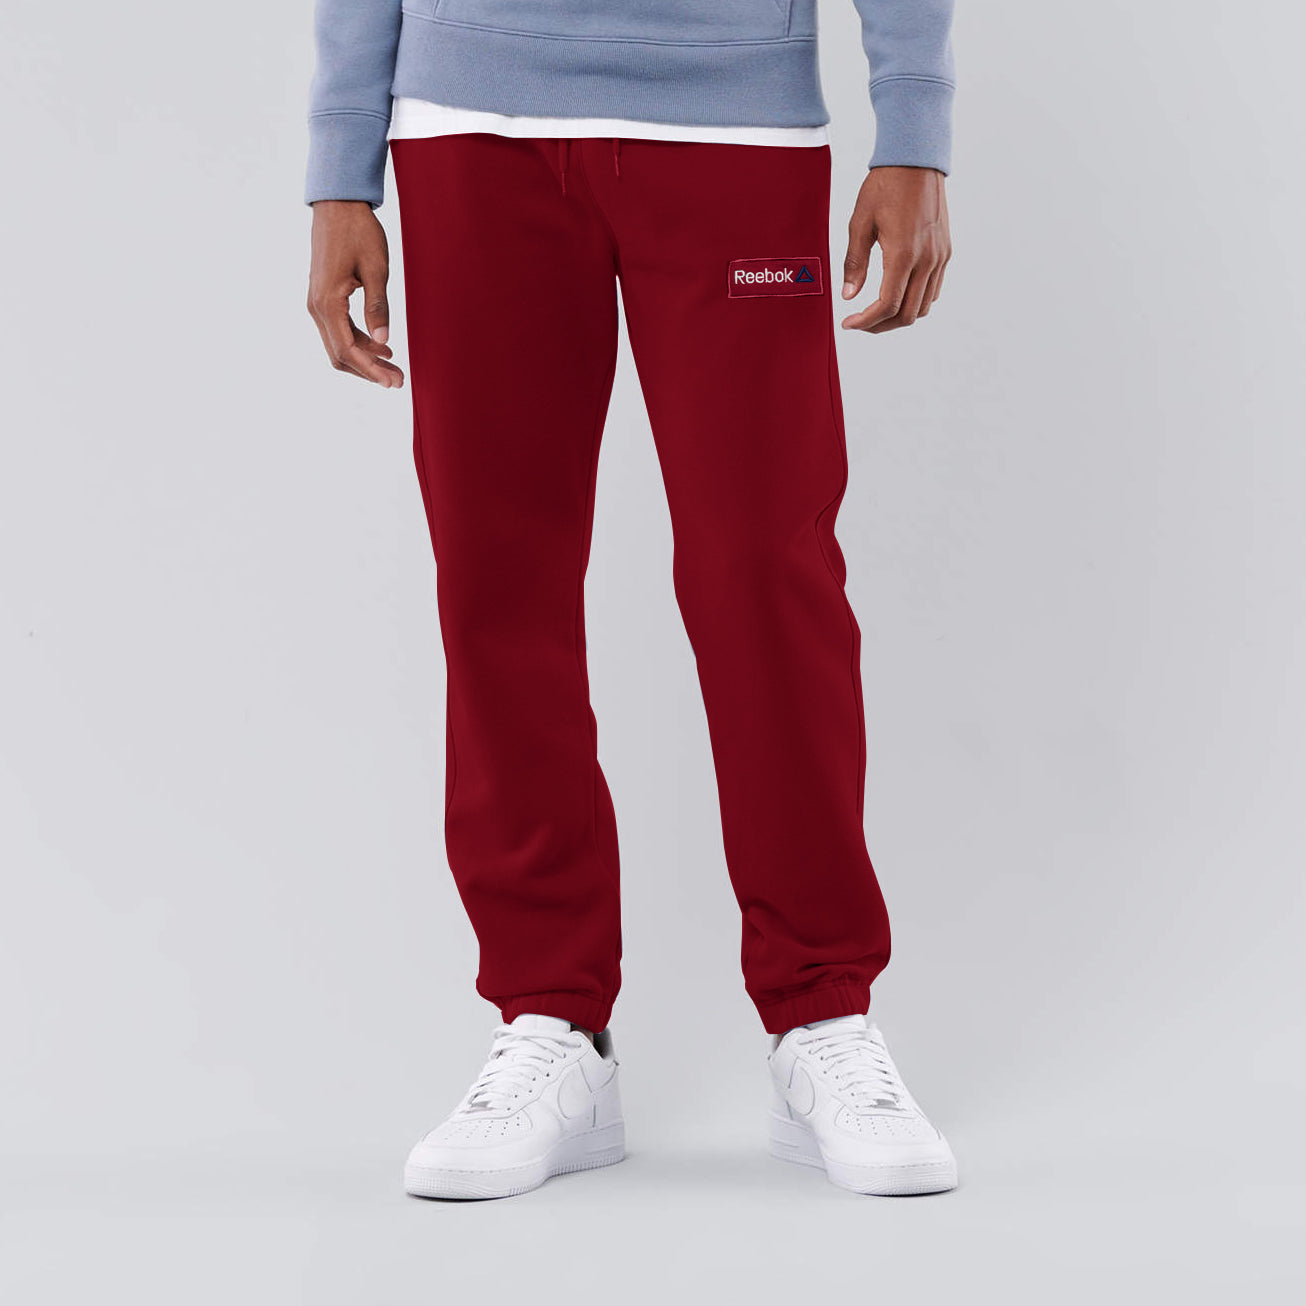 Reebok Heavy Fleece Regular Fit Gathering Bottom Trouser For Men-Rose Red With White Embroidery-NA12570